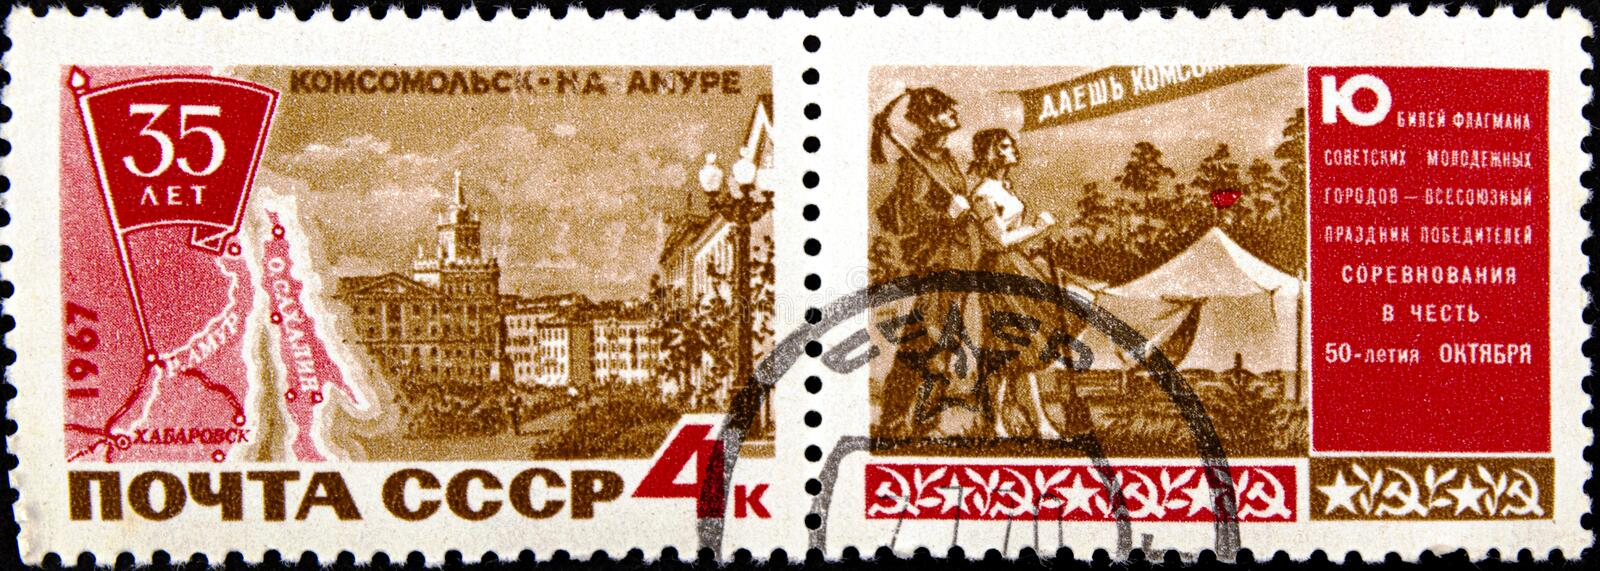 02 08 2020 Divnoe Stavropol Territory Russia postage stamp USSR 1967 The 35th Anniversary of Komsomolsk-on-Amur anniversary of the stock photography